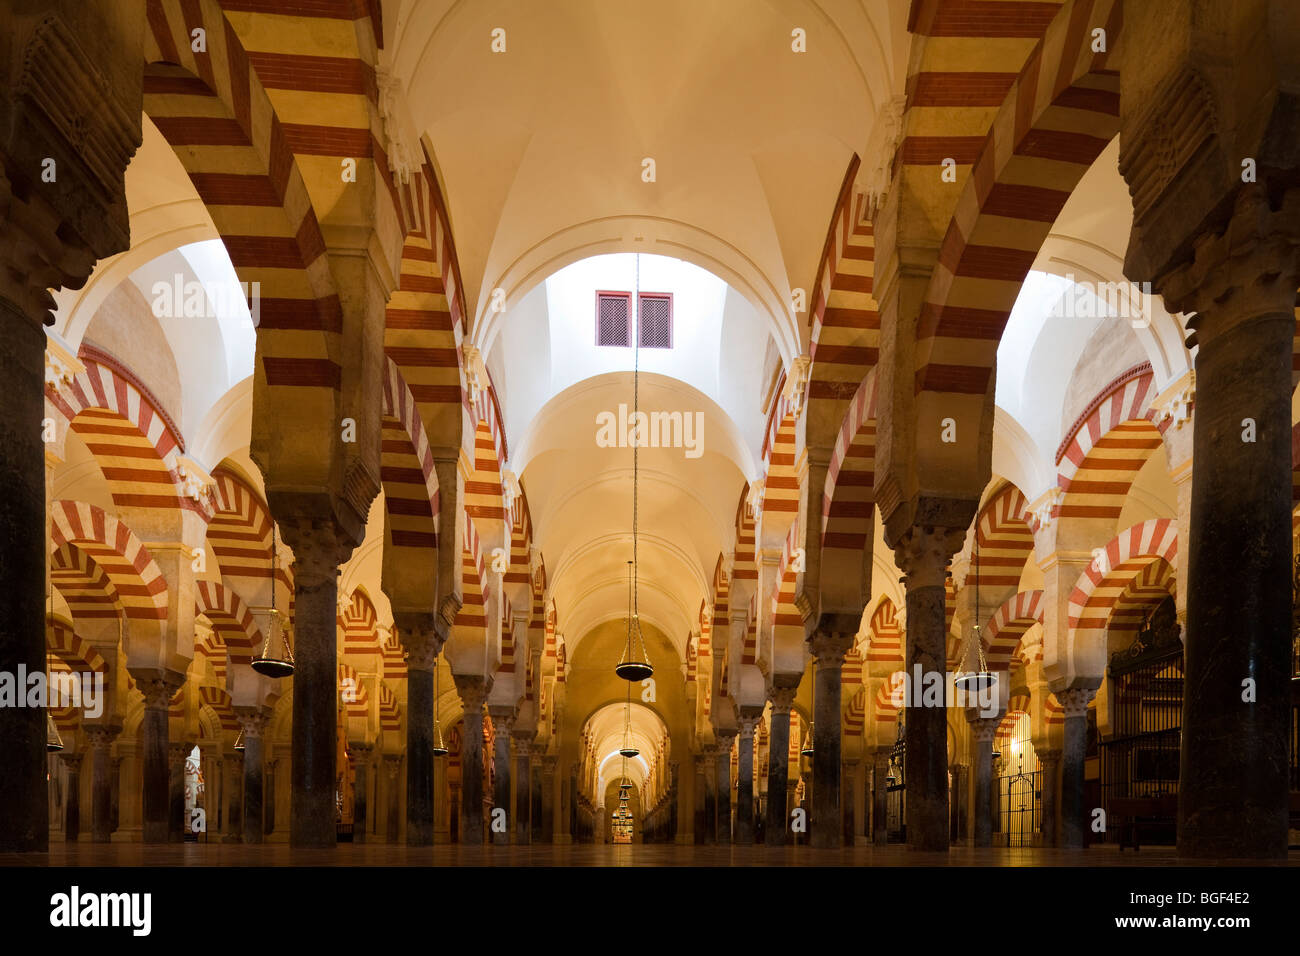 arches of prayer hall, Great Mosque of Cordoba, Andalusia, Spain - Stock Image